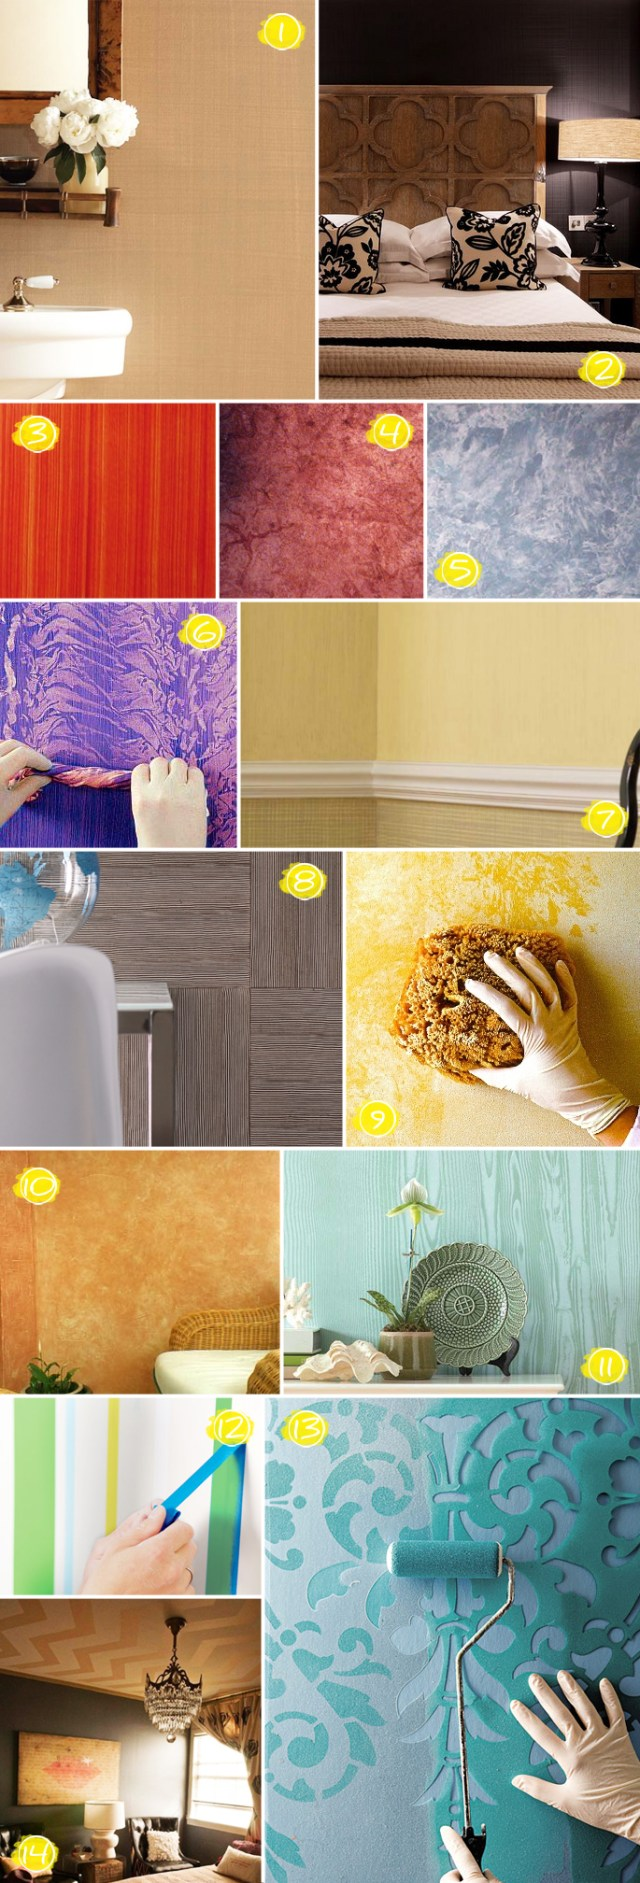 Textured Wall Painting Ideas: From Faux Wood to Linen Effects | Home ...